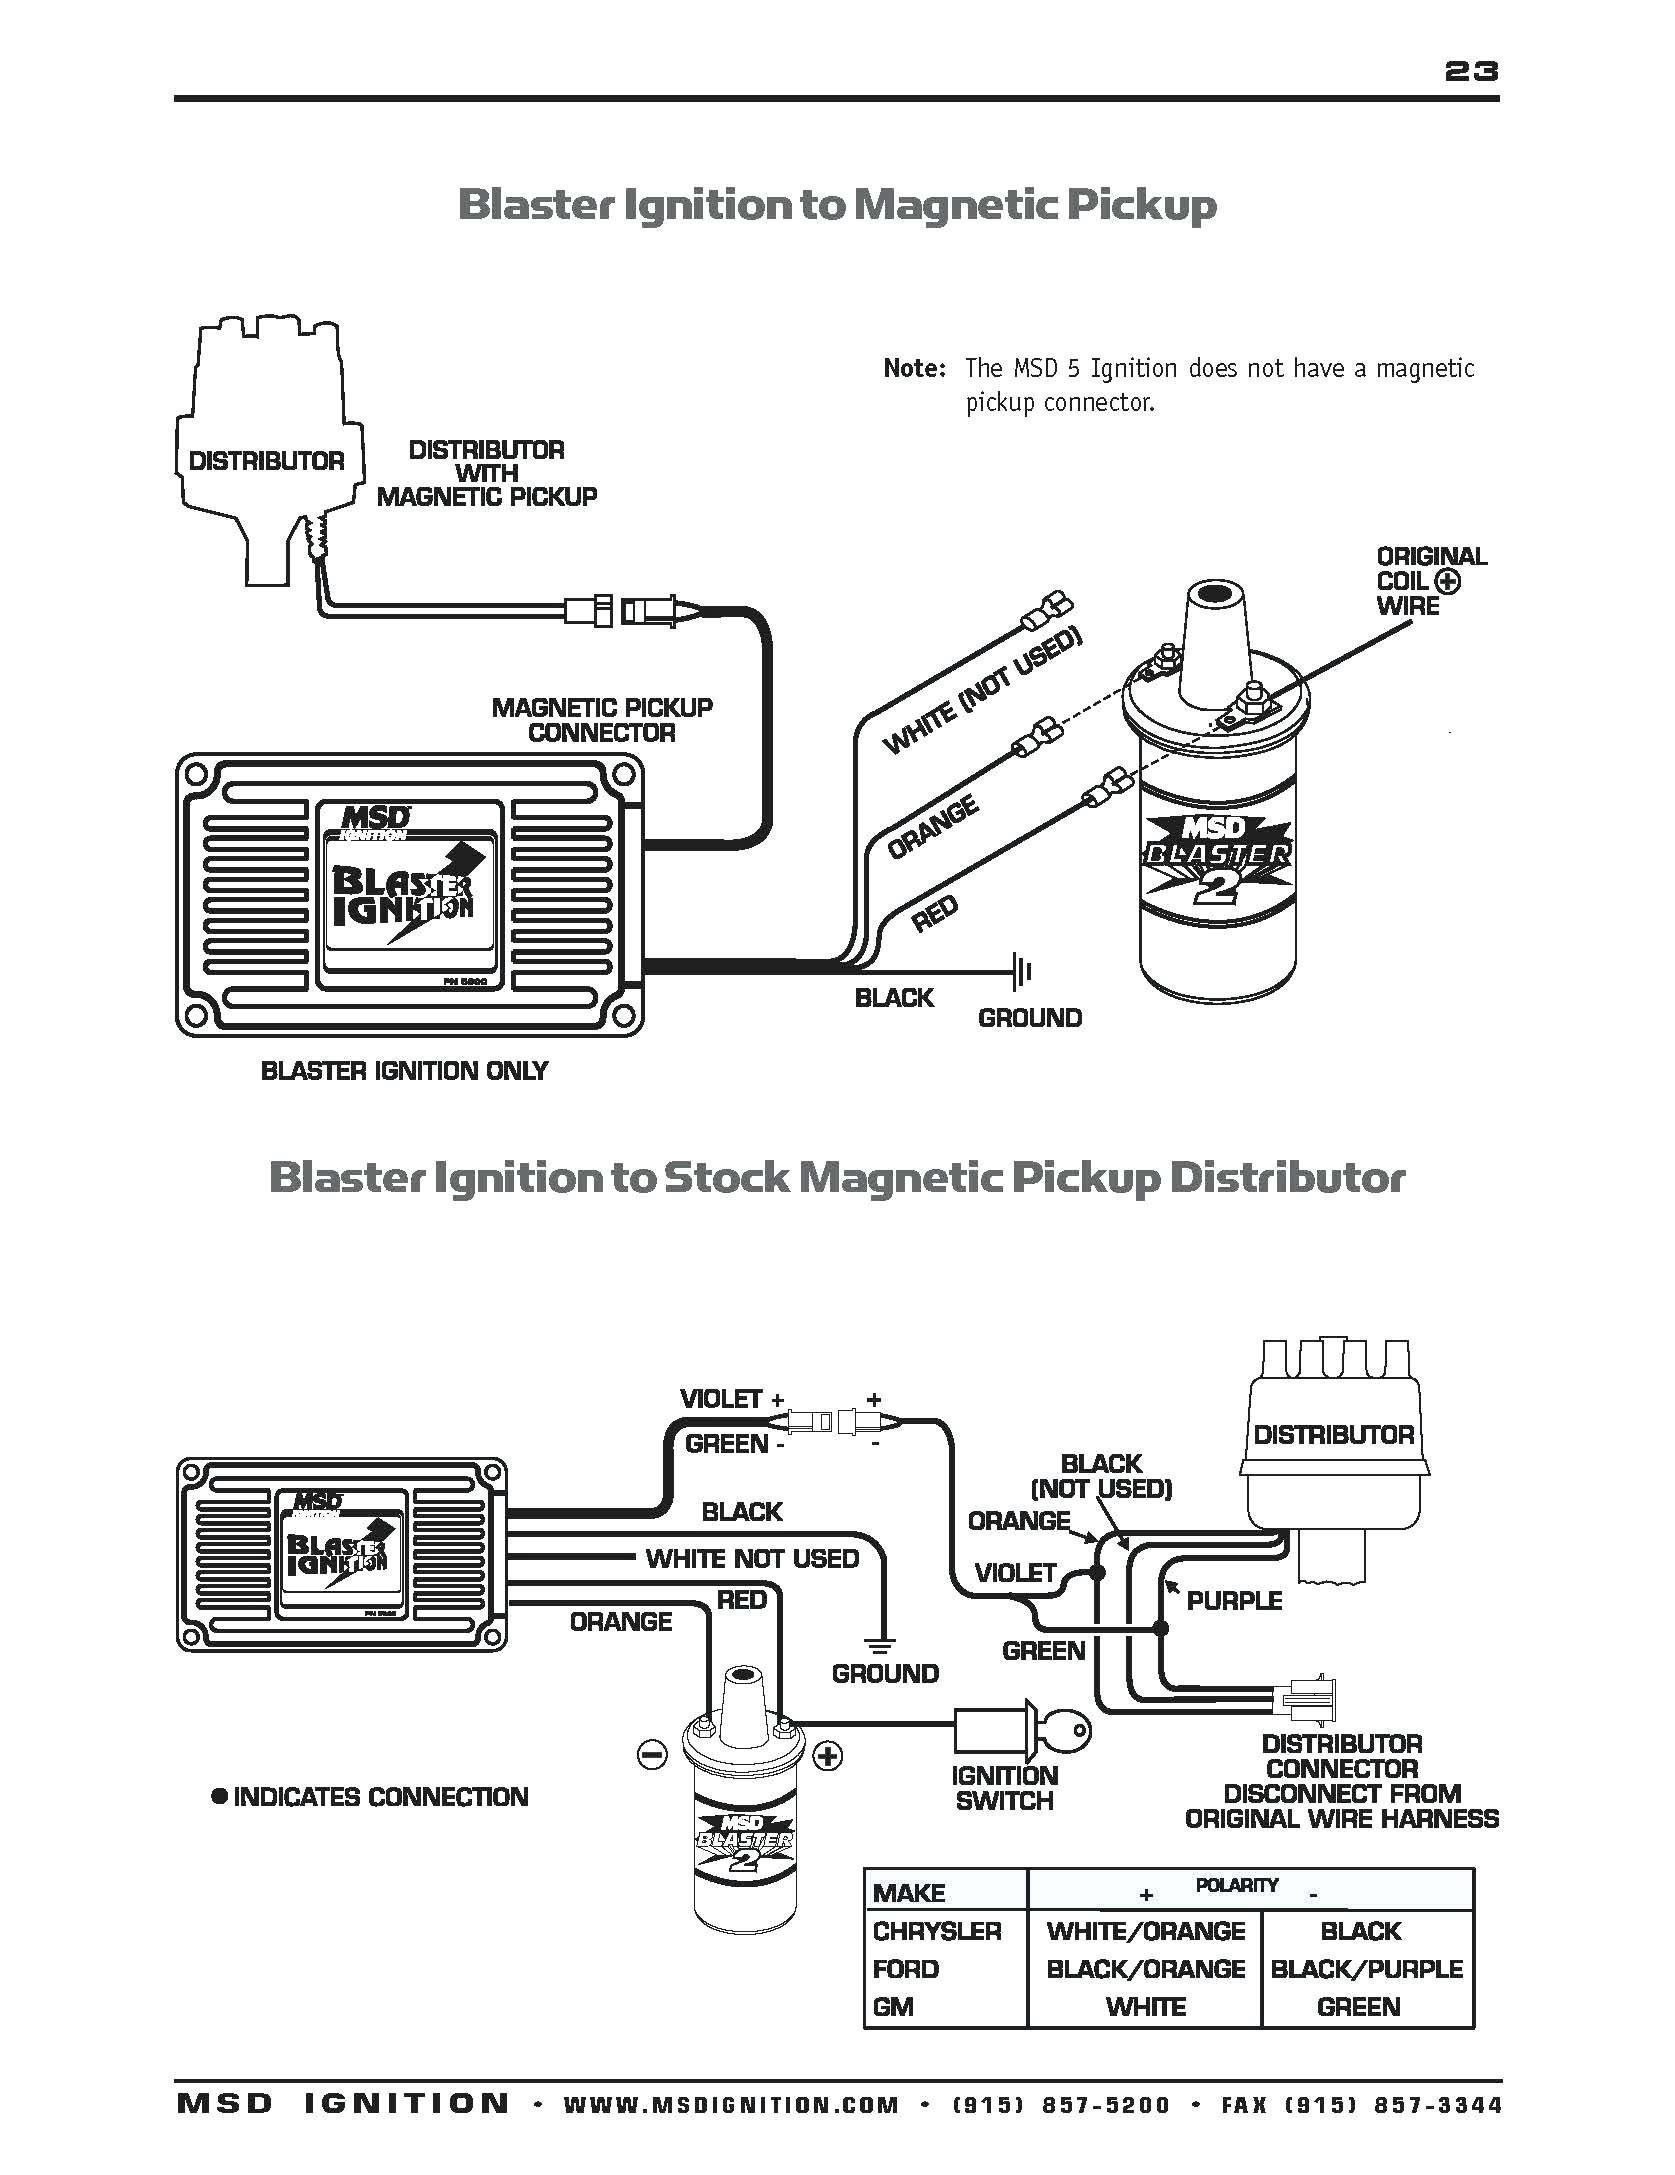 Chevy Wiring Diagram Points | Wiring Diagram Database on mallory ignition troubleshooting, mallory ct pro ignition system, mallory 8548201 distributor wiring diagram, mallory ignition wiring diagram chevy, mallory ignition wiring diagram 75, mallory ignition distributor, mallory marine ignition wiring, mallory ignition wiring diagram 85, mallory ignition wiring diagram digital motorcycle, ford 8n ignition system diagrams, mallory 6100m ignition, mallory magneto ignition wiring diagram, mallory ignition module,